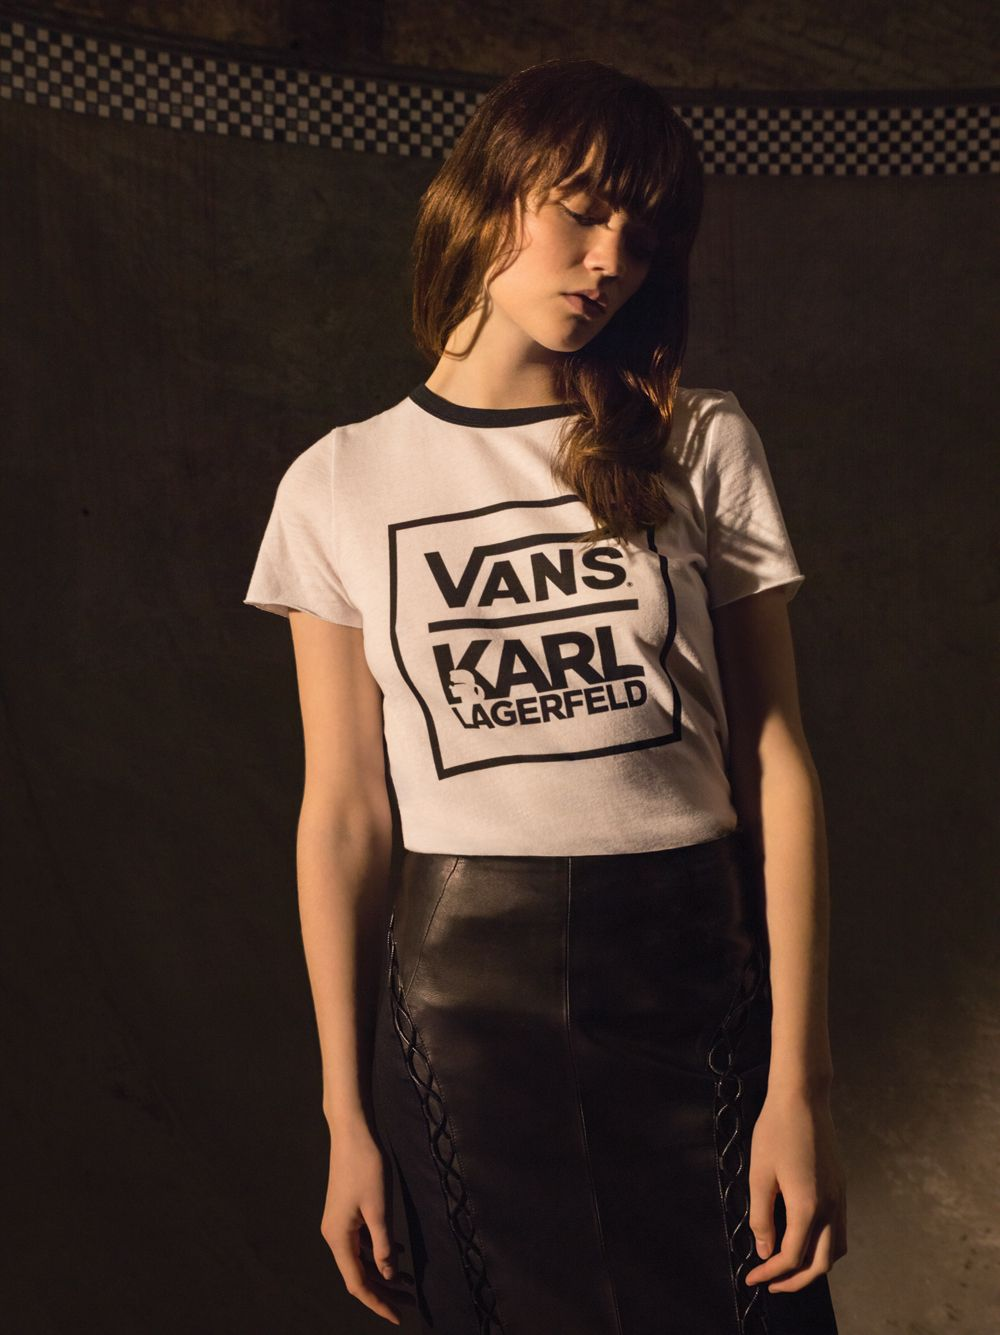 Here's a First Look at the Vans x Karl Lagerfeld Collab